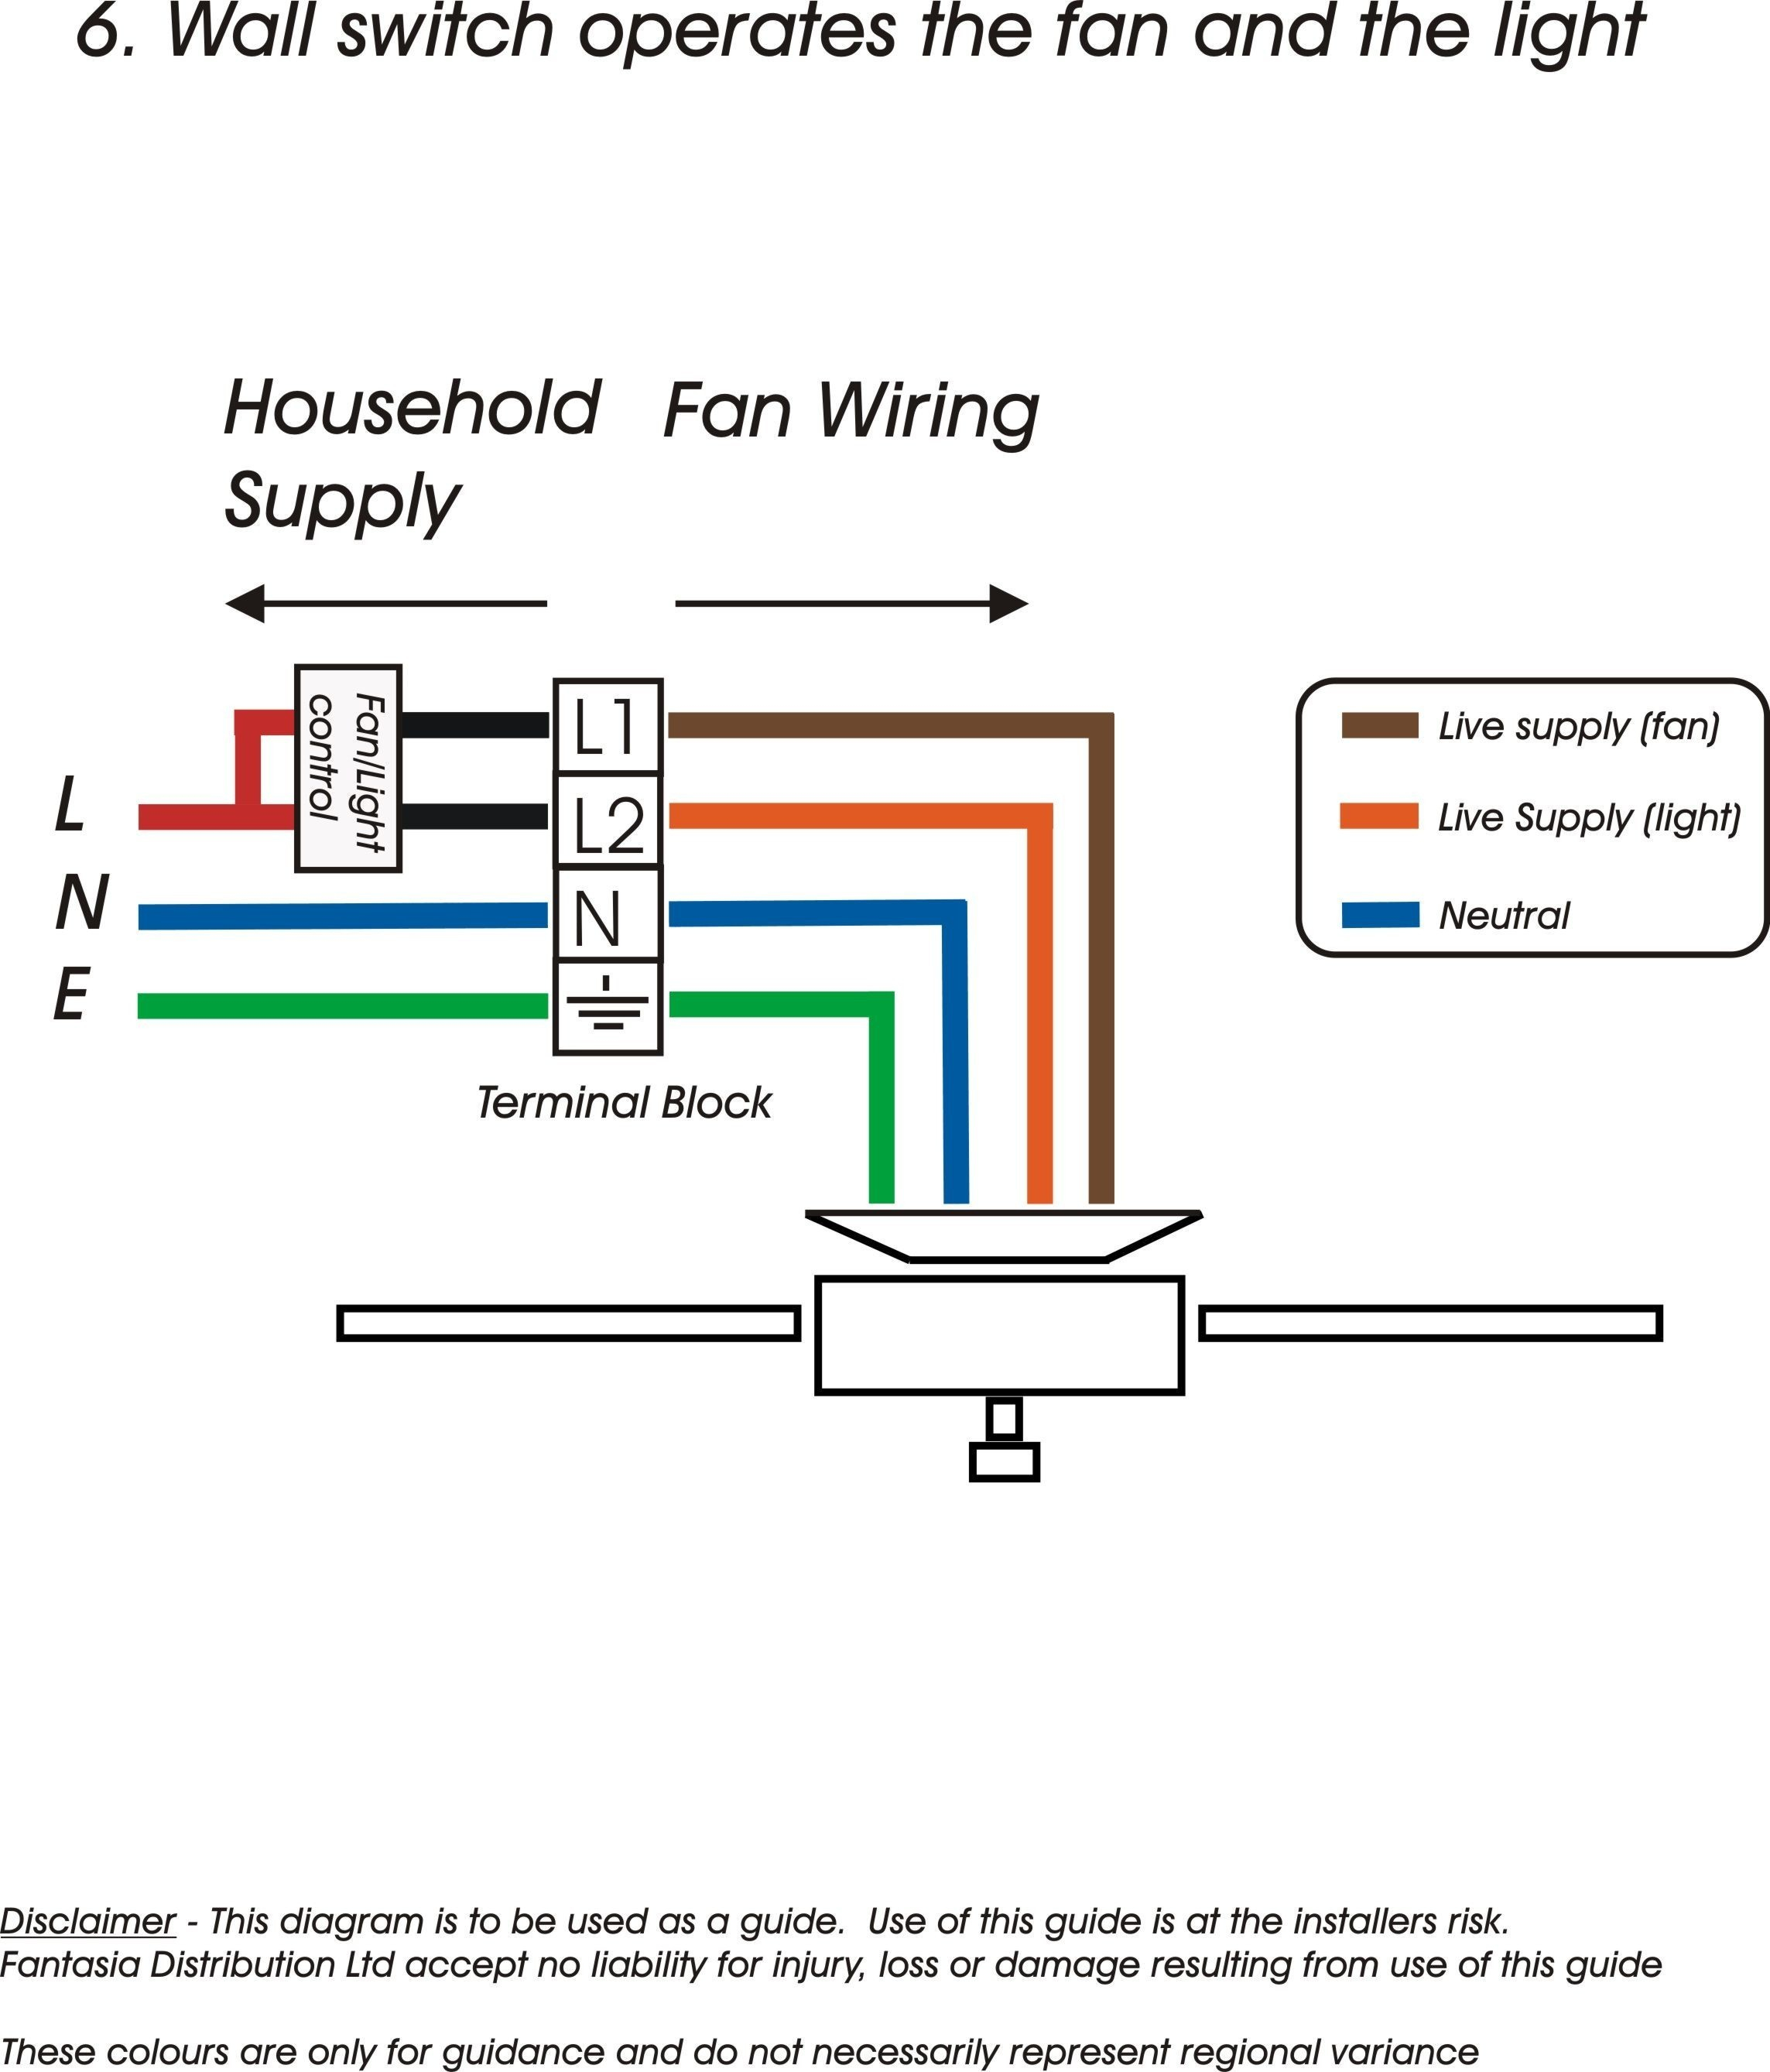 Extension Cord Wiring Diagram | Wiring Diagram - Extension Cord Wiring Diagram